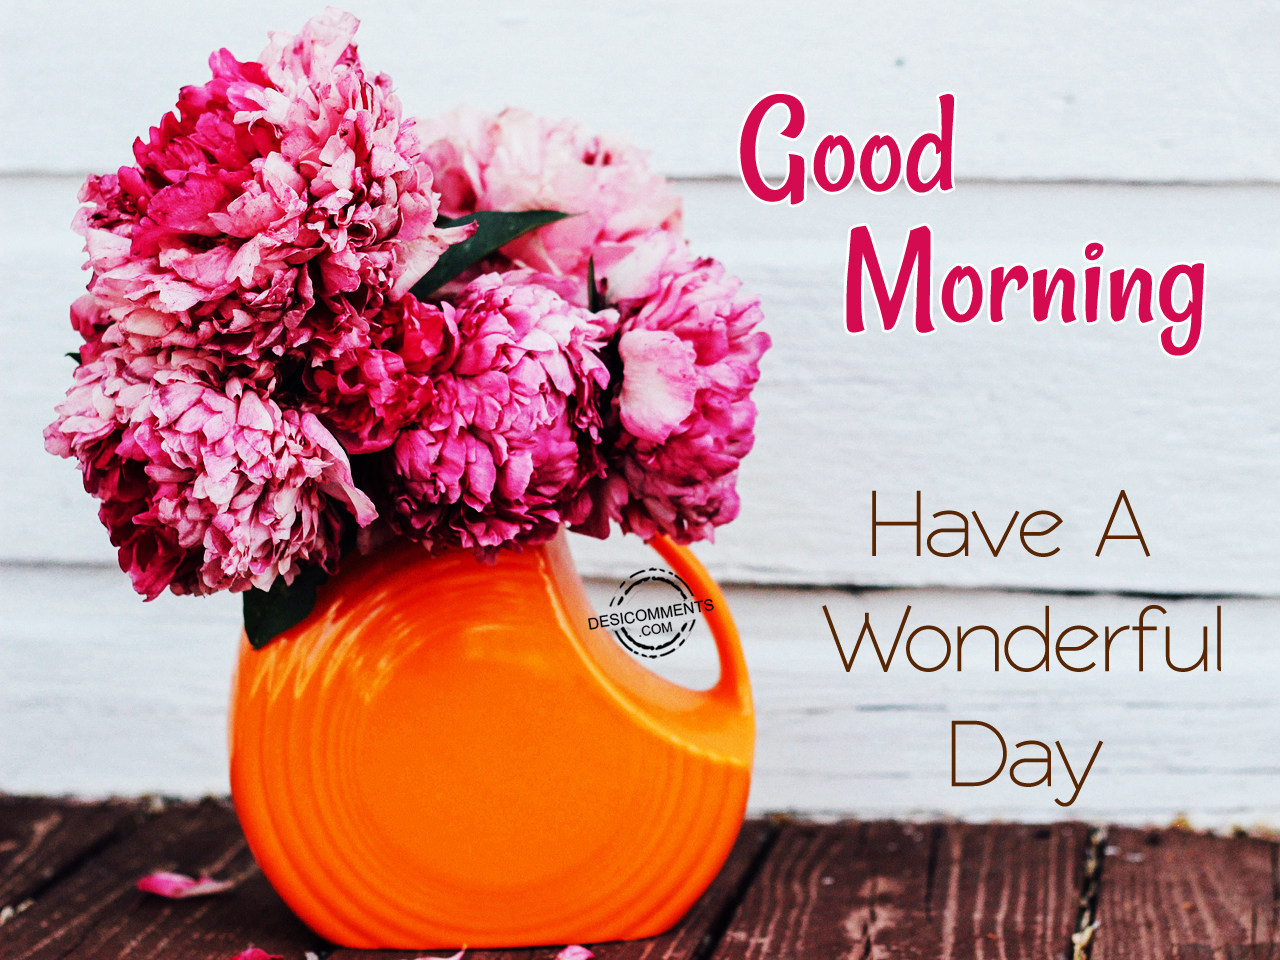 Good Morning Greetings For A Wonderful Day With Heart Touching